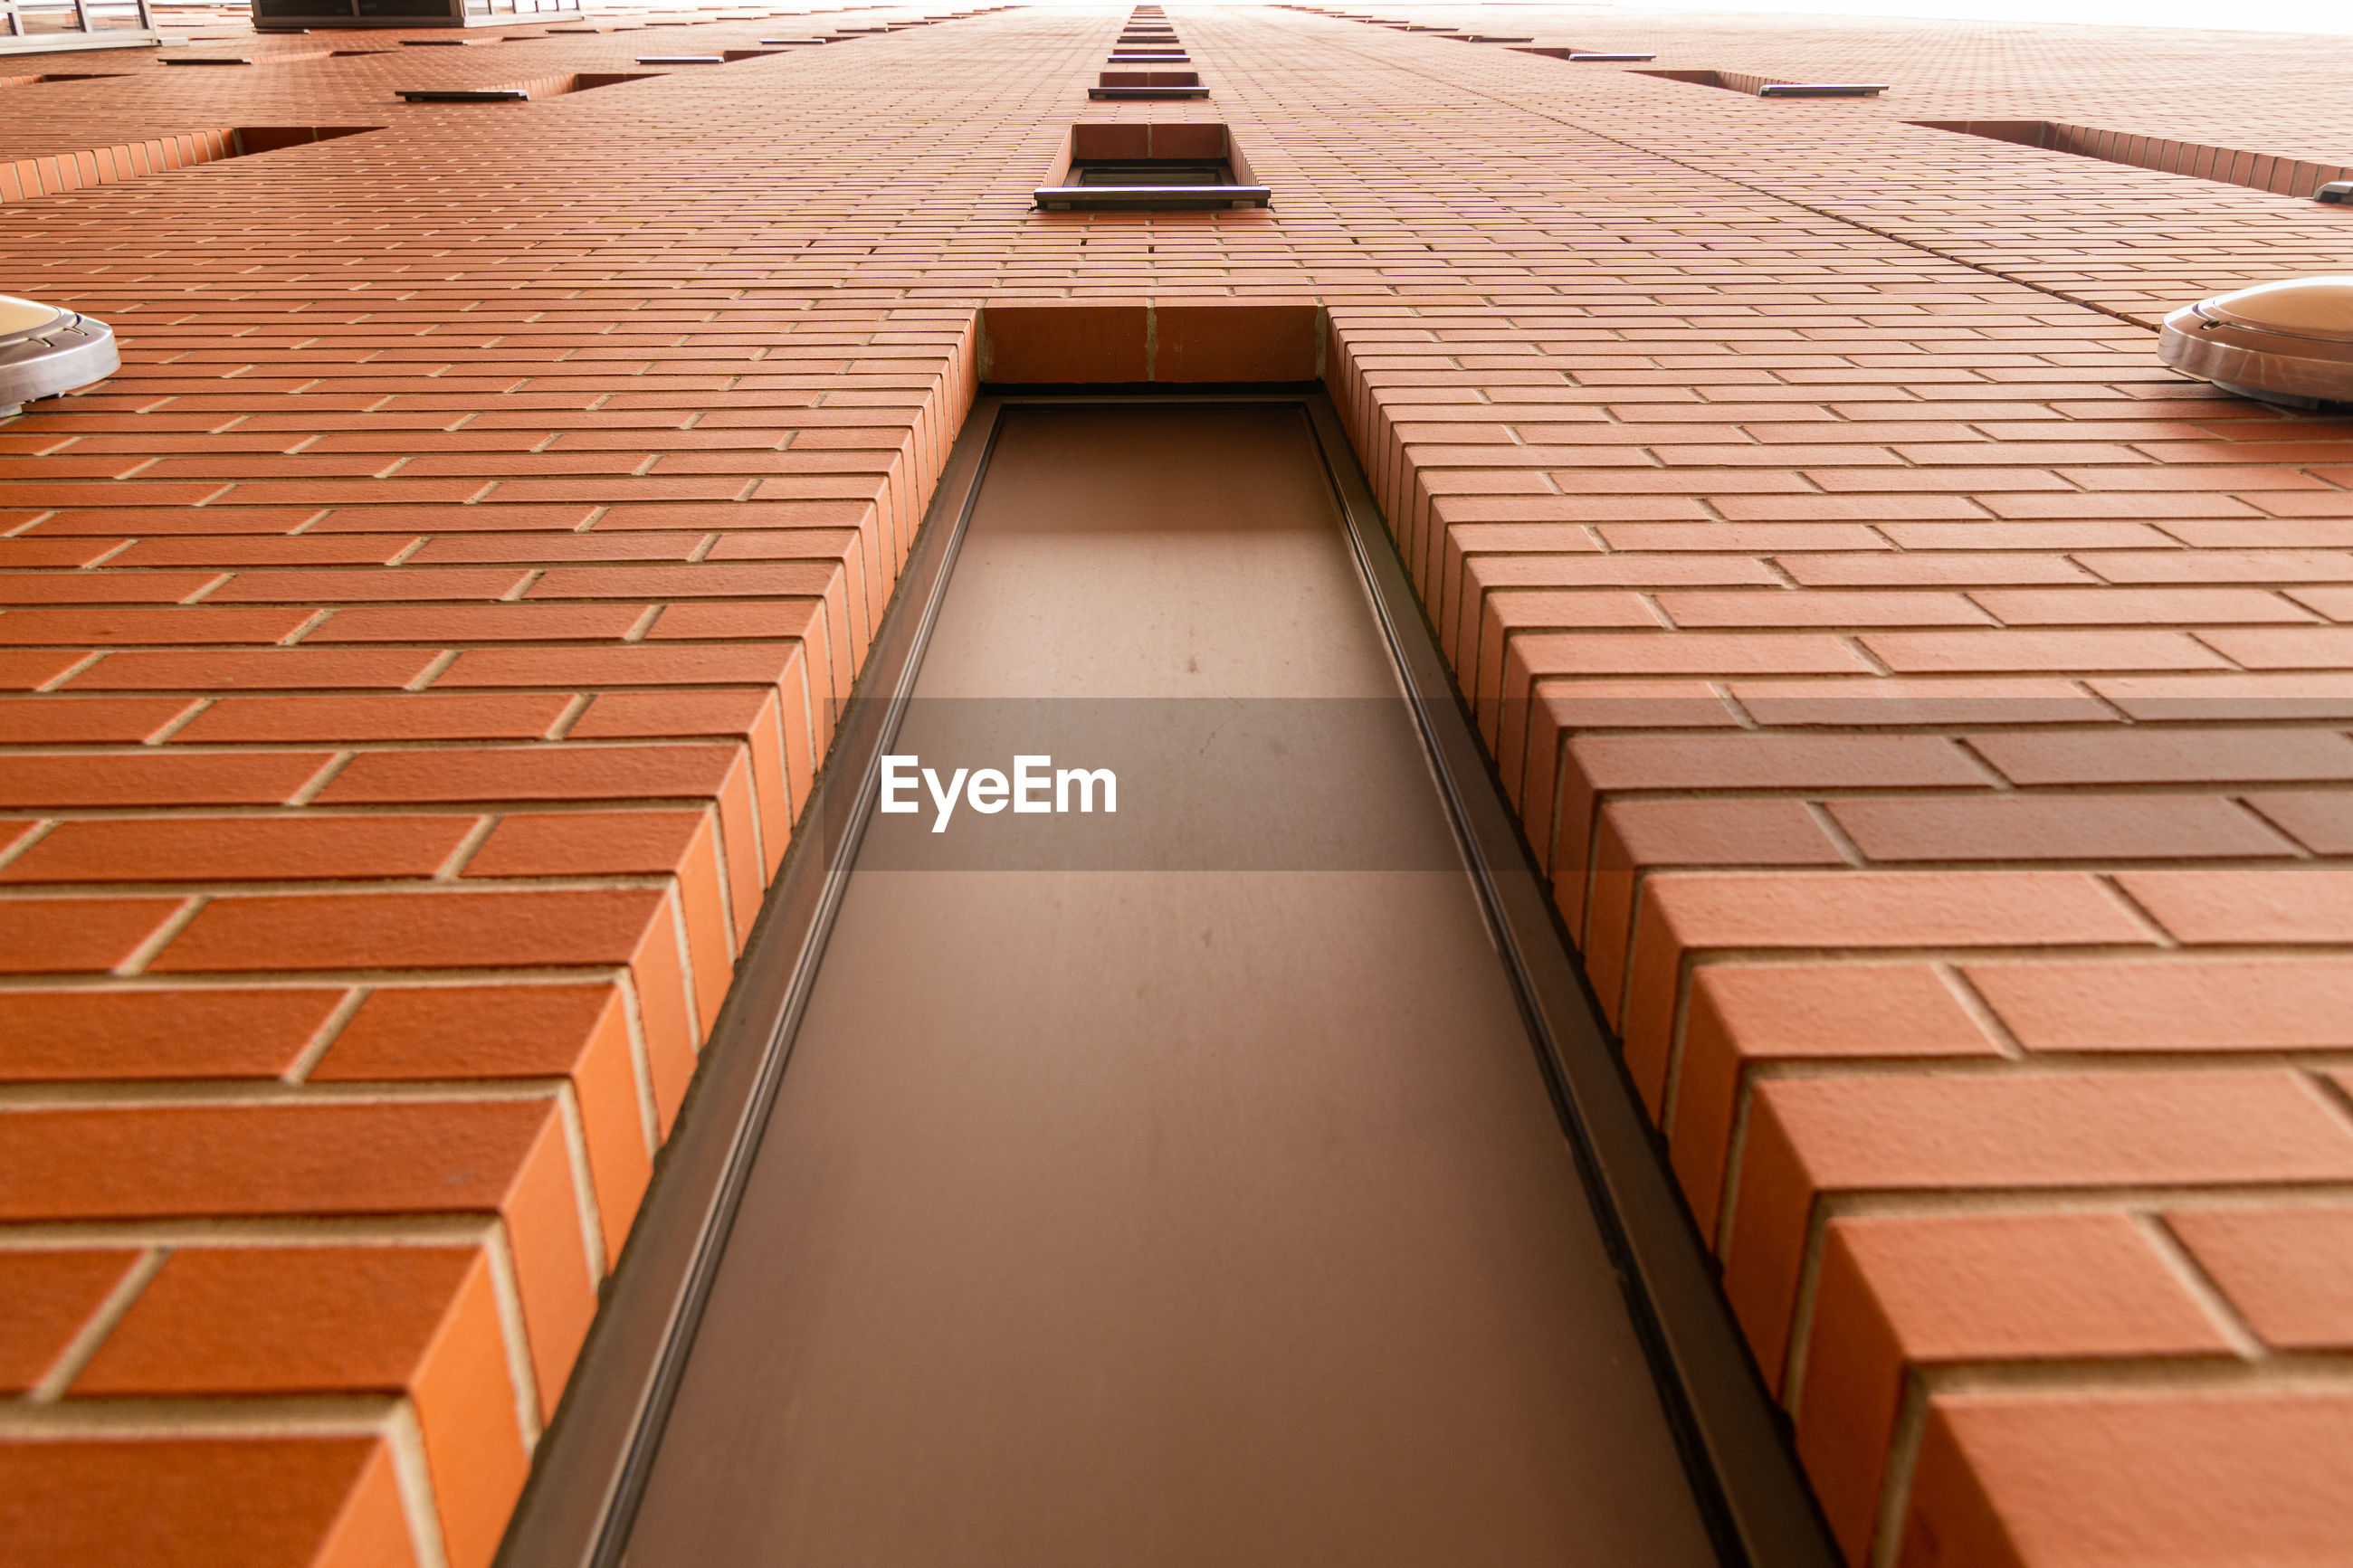 HIGH ANGLE VIEW OF BUILDING ROOF AGAINST BRICK WALL